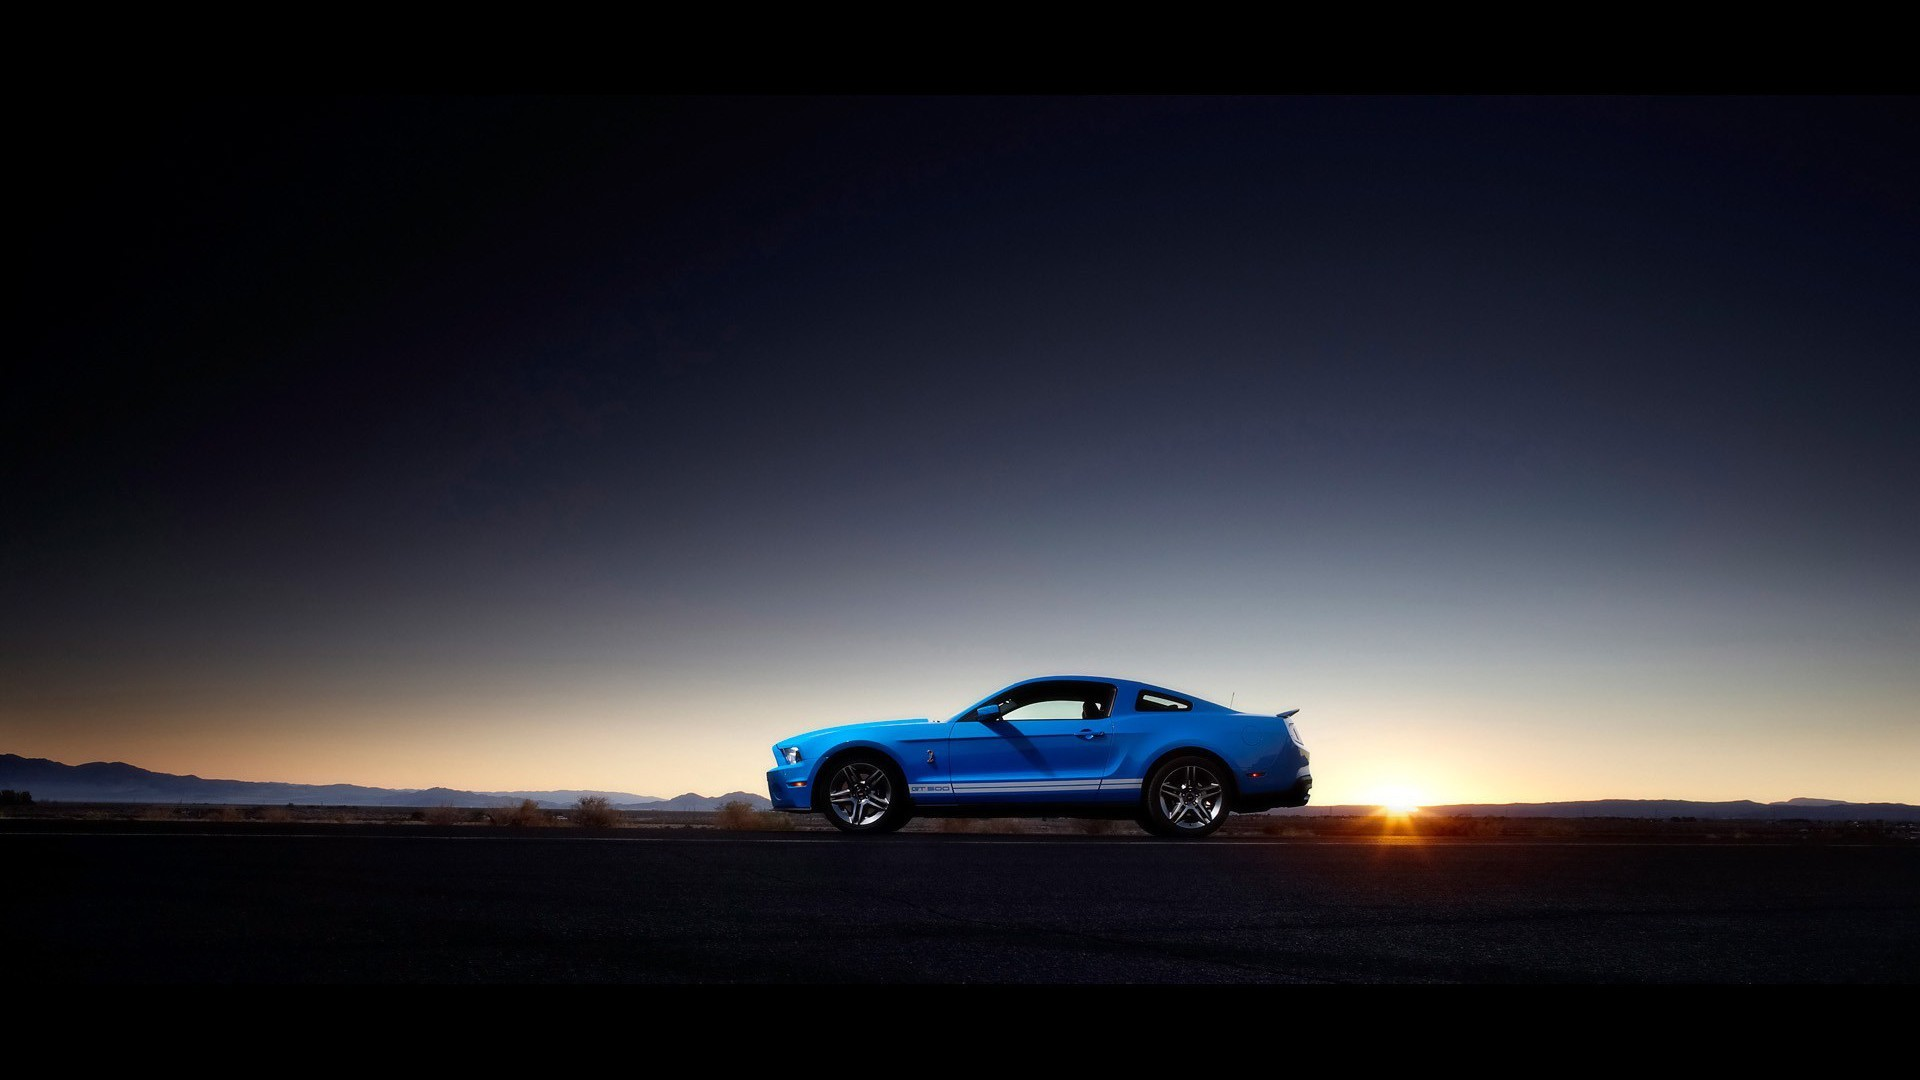 Iphone Wallpaper Muscle Car Ford Mustang Shelby Gt500 Muscle Cars Sunset Wallpaper